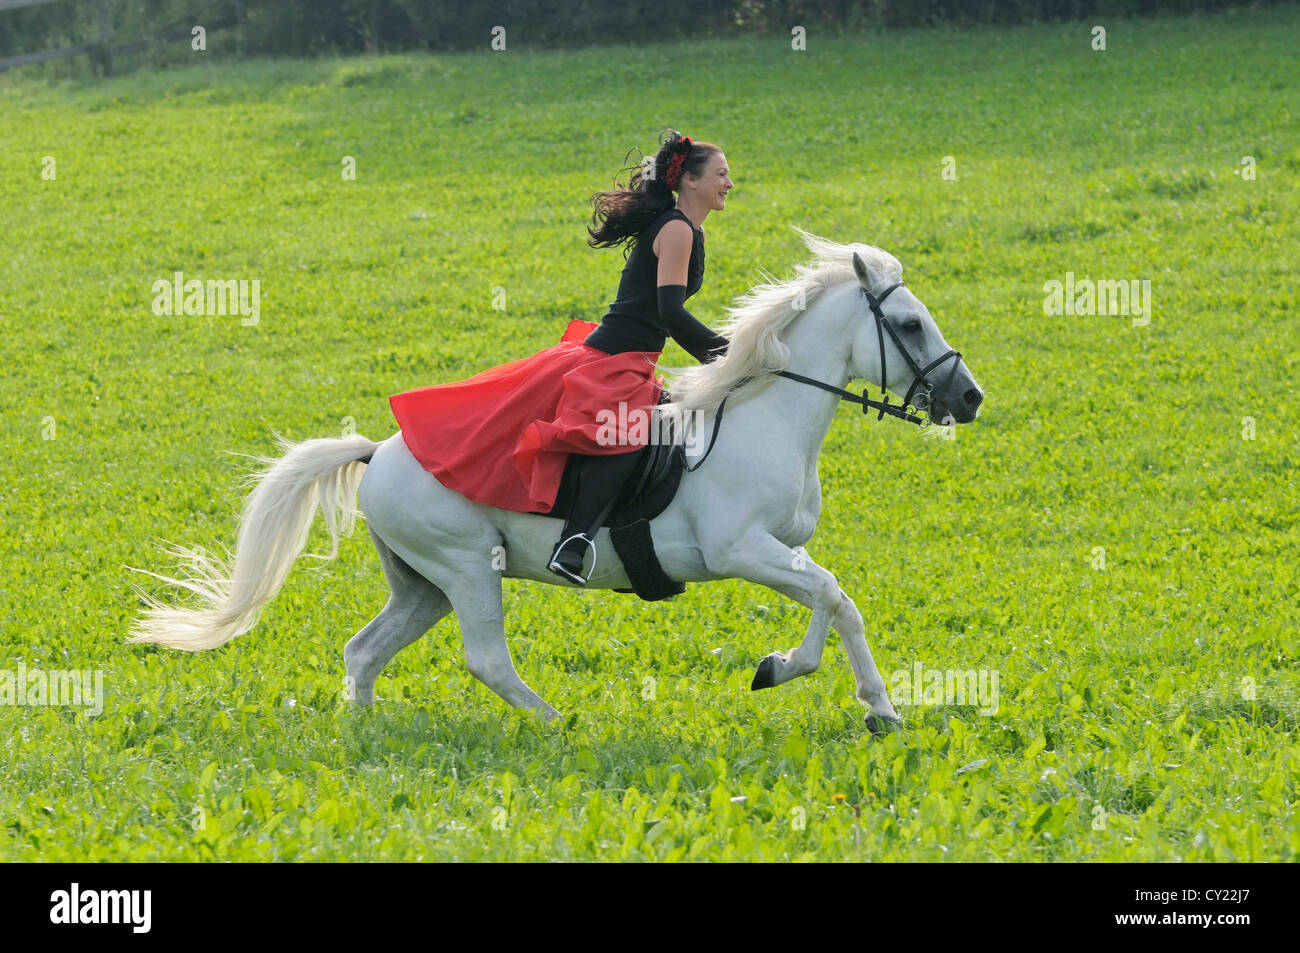 Rider wearing a 'Spanish' dress on back of a white Connemara pony stallion - Stock Image